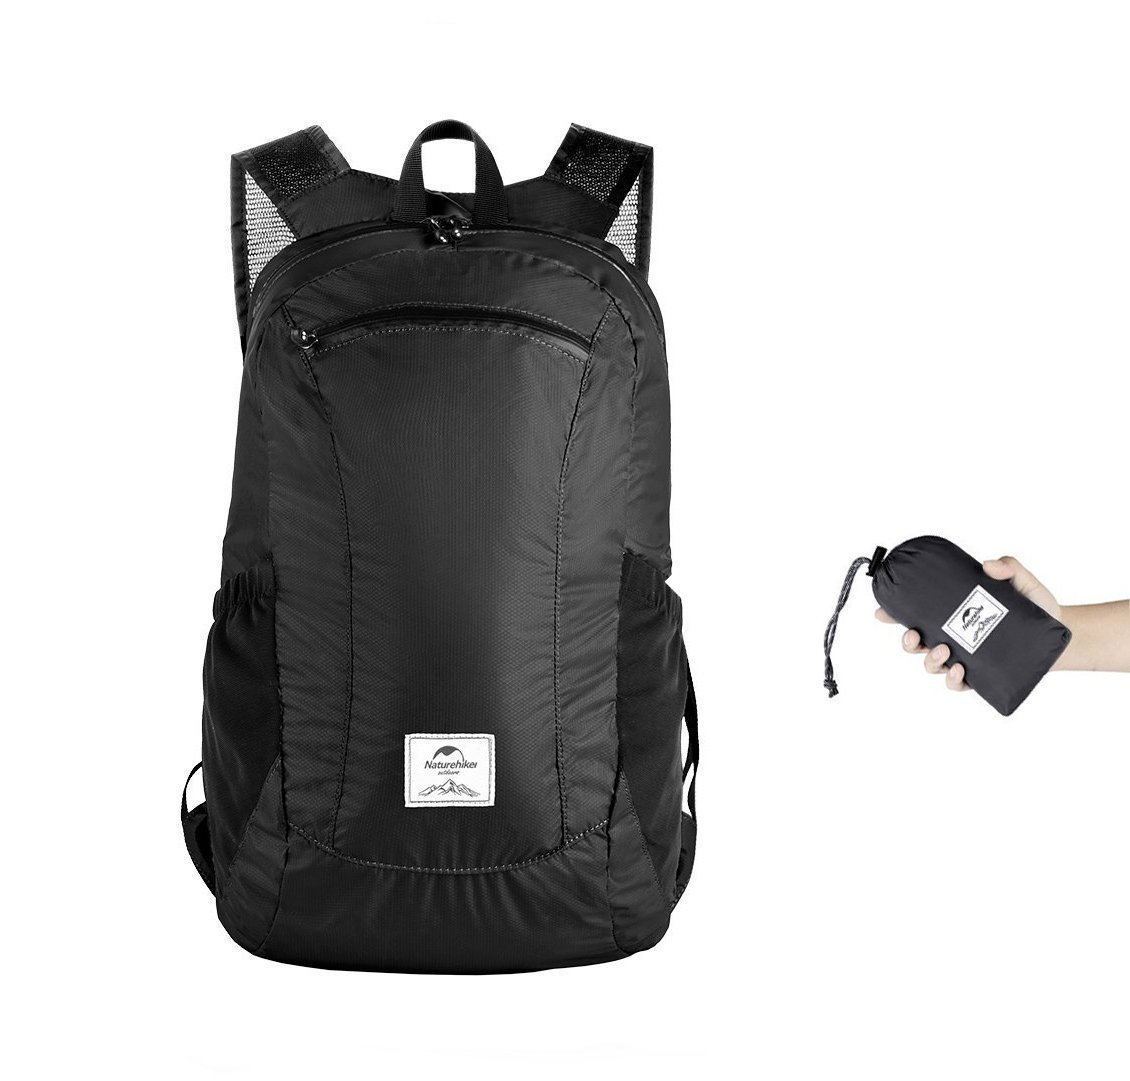 Naturehike 18L Ultralight Collapsible Backpack (Black)